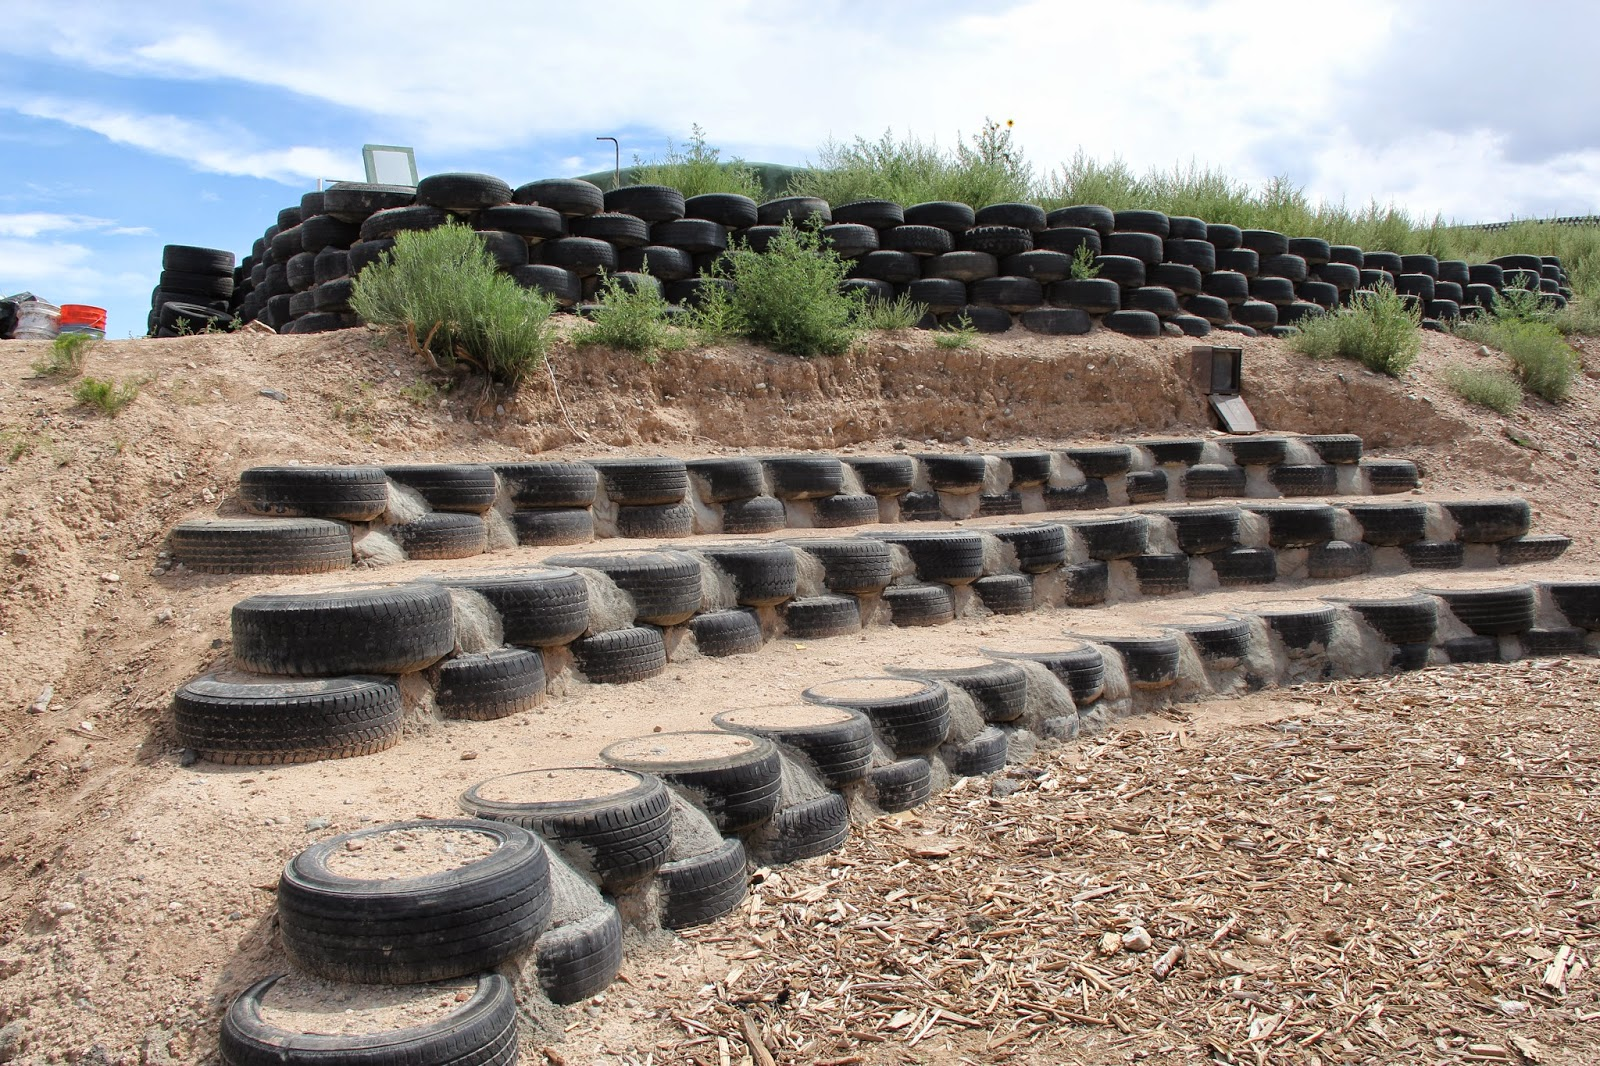 Green Homes Plans Earthship Tire Off Gassing Research Hacking The Earthship